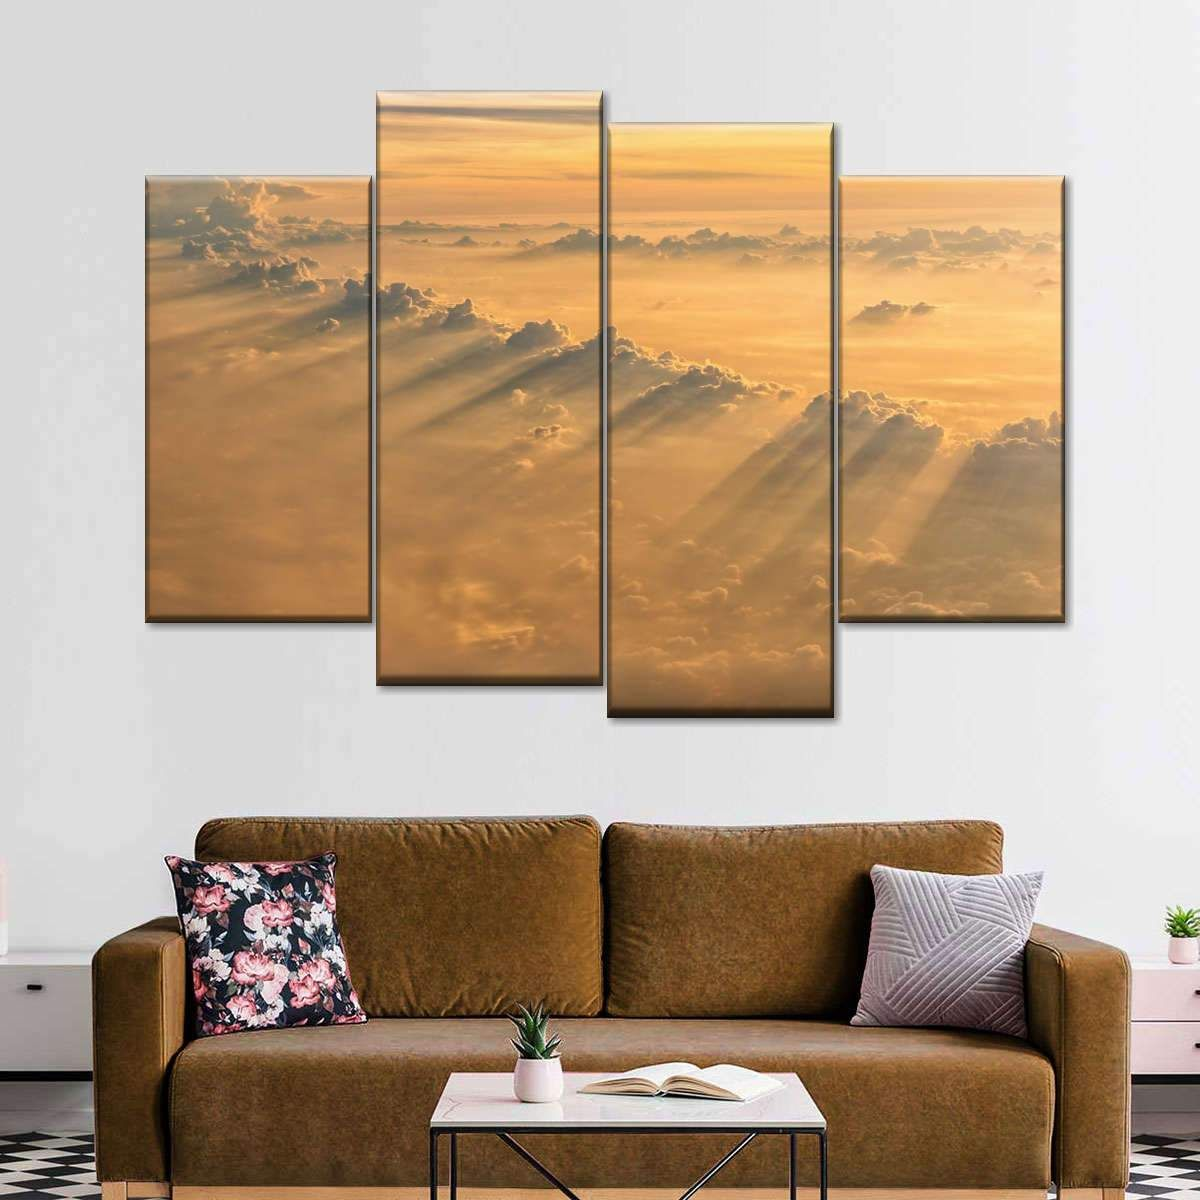 Sunrays From Heaven brings blissful art to your living room space. This beautiful canvas print blends in seamlessly with any decor style and color palette, while adding a fresh touch from the outdoors.